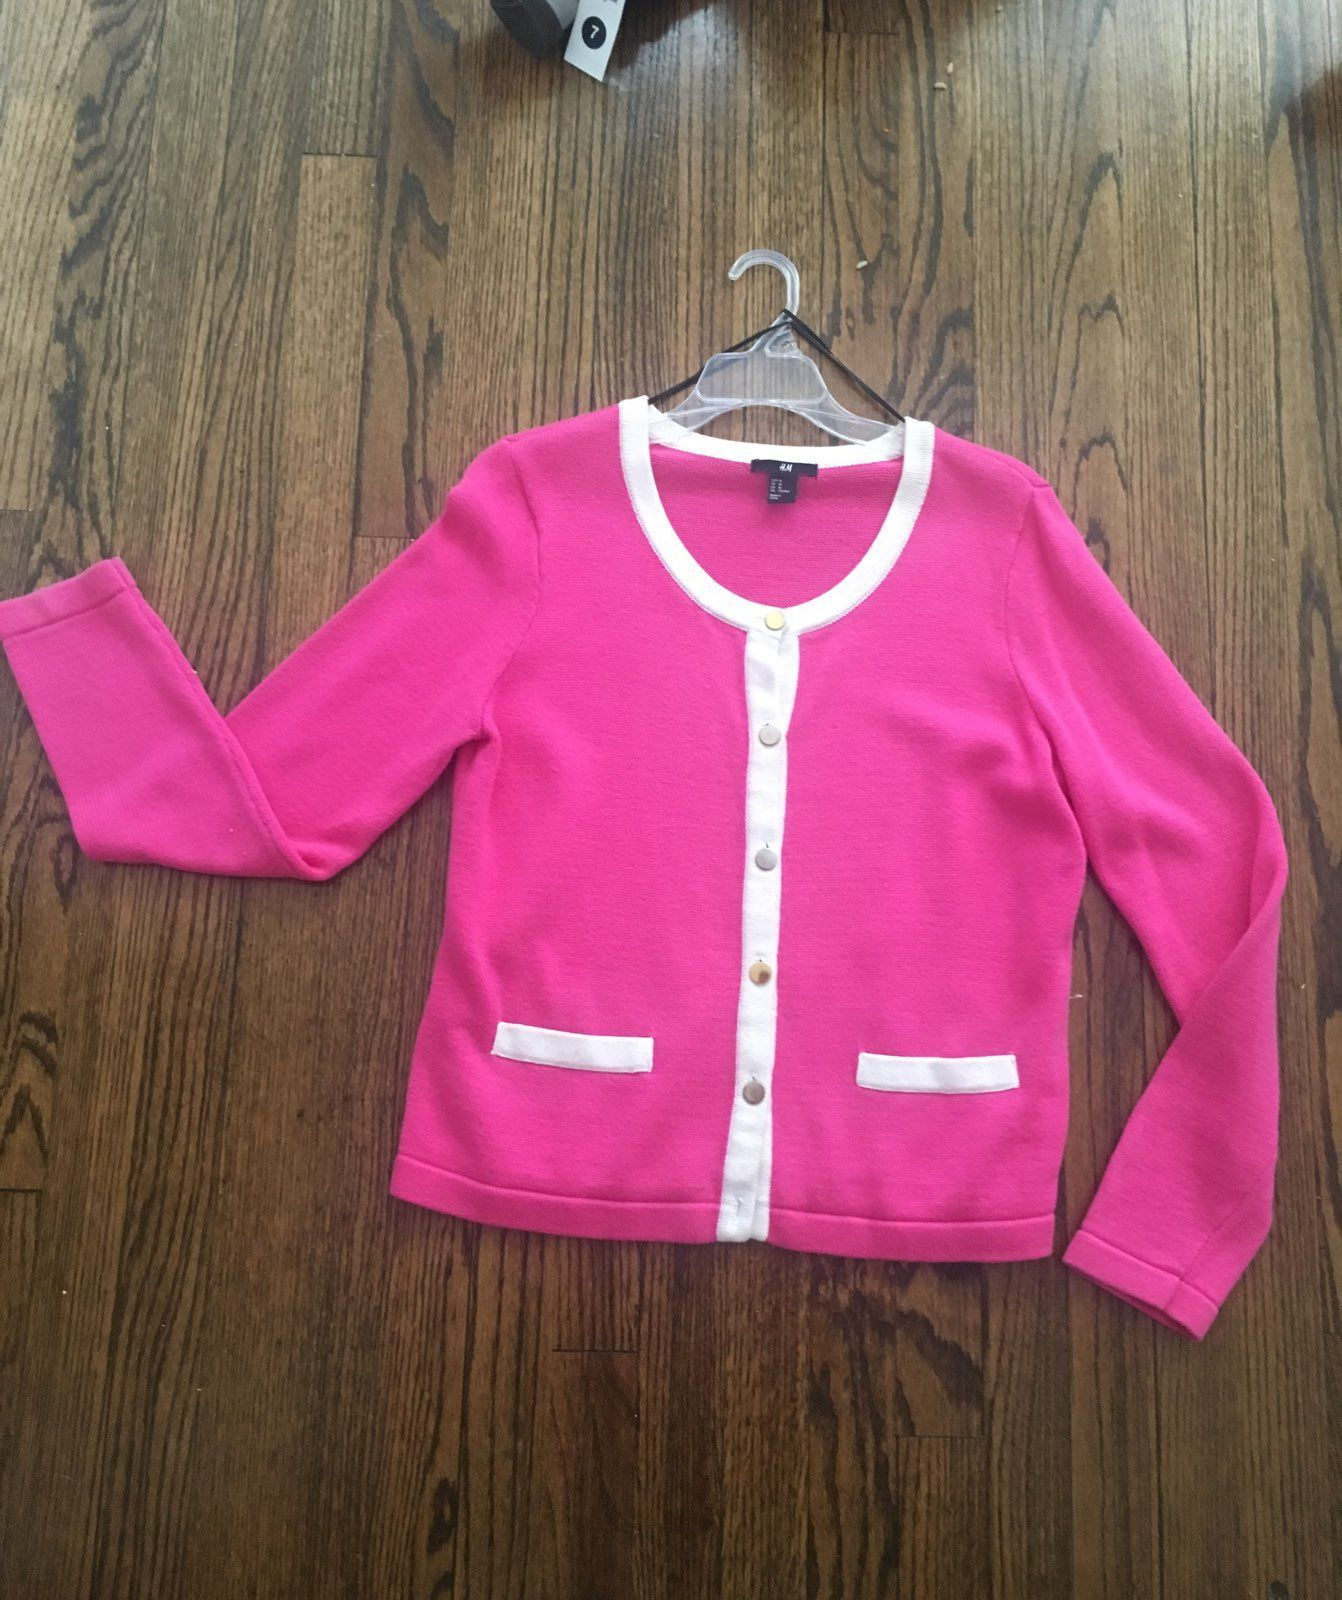 H&M Pink Button Up Sweater - Mercari: BUY & SELL THINGS YOU LOVE